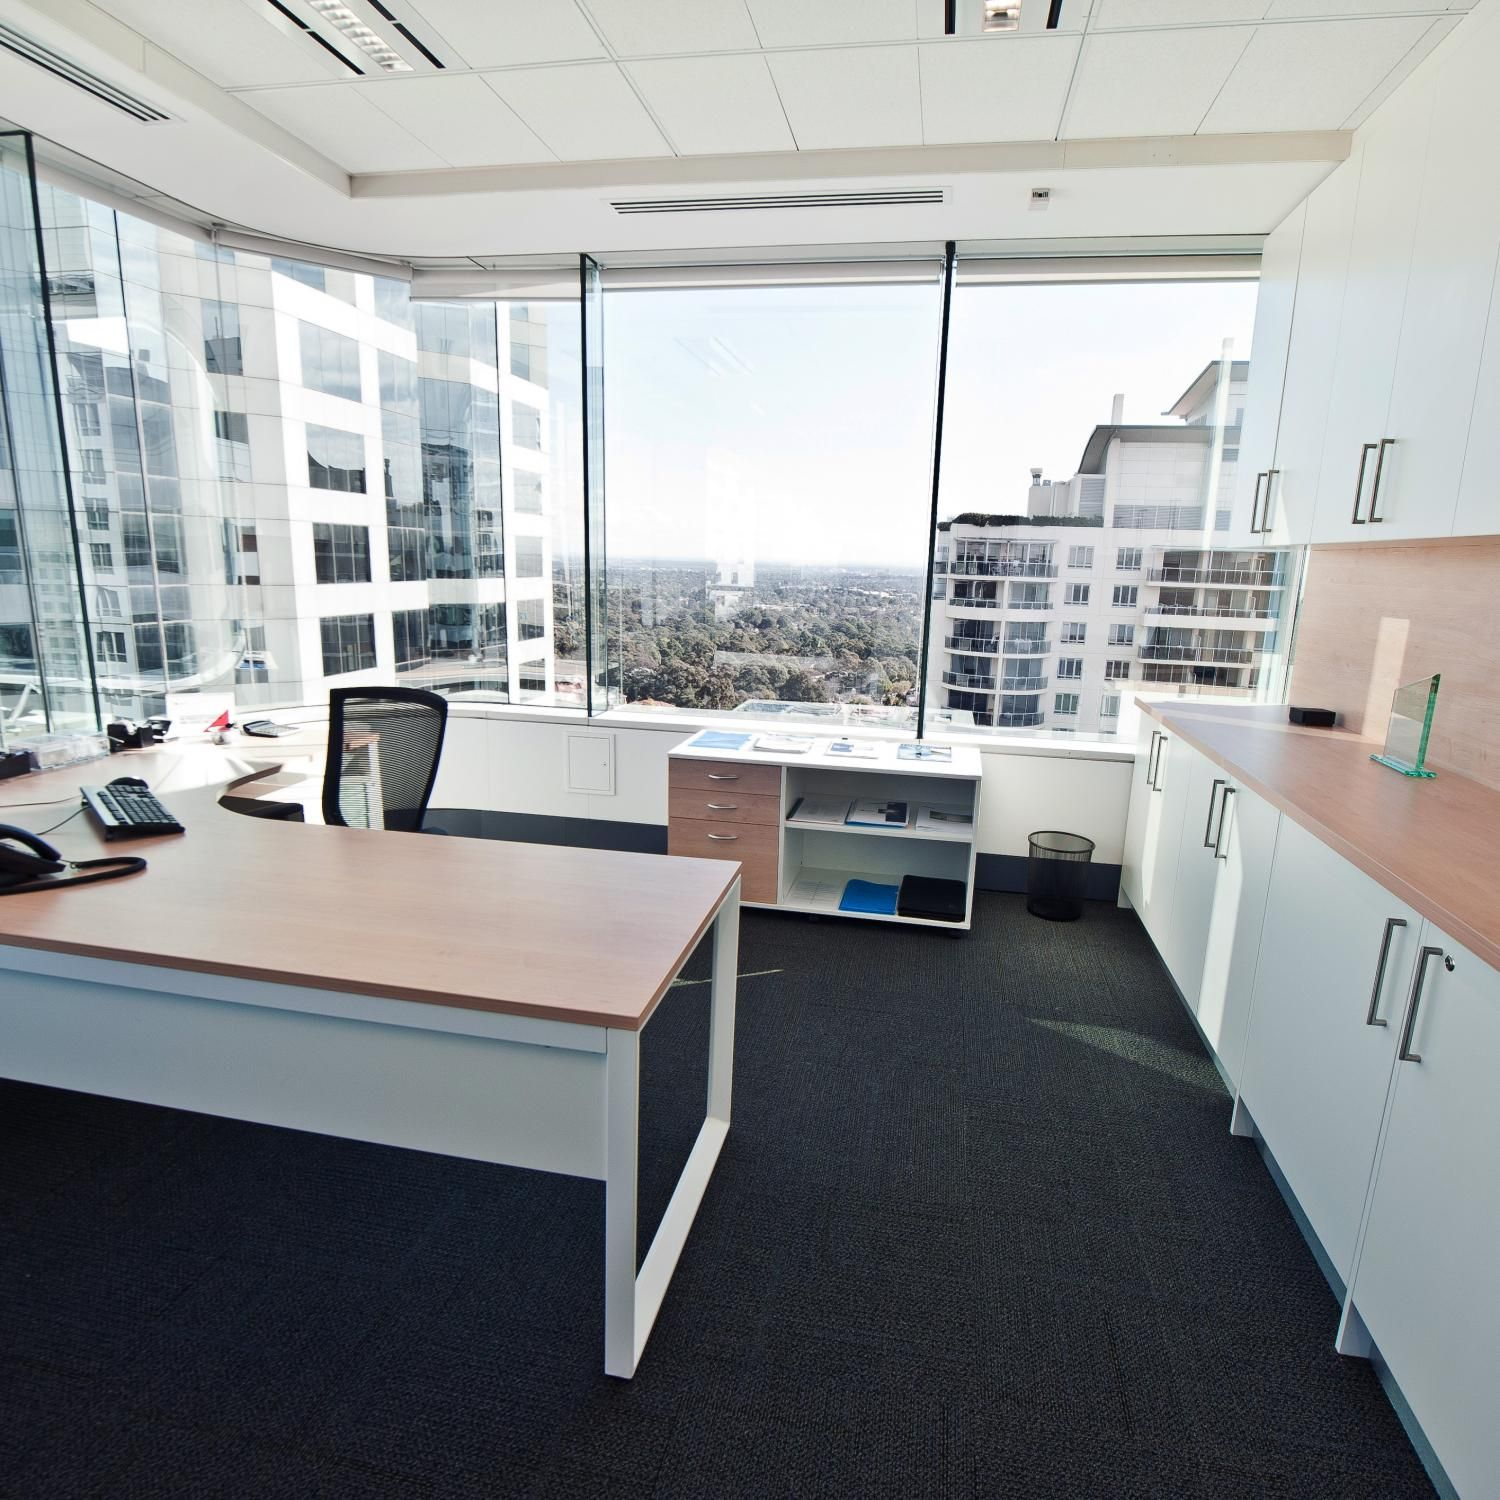 Office Fit Out Case Studies | Business Interiors By Staples